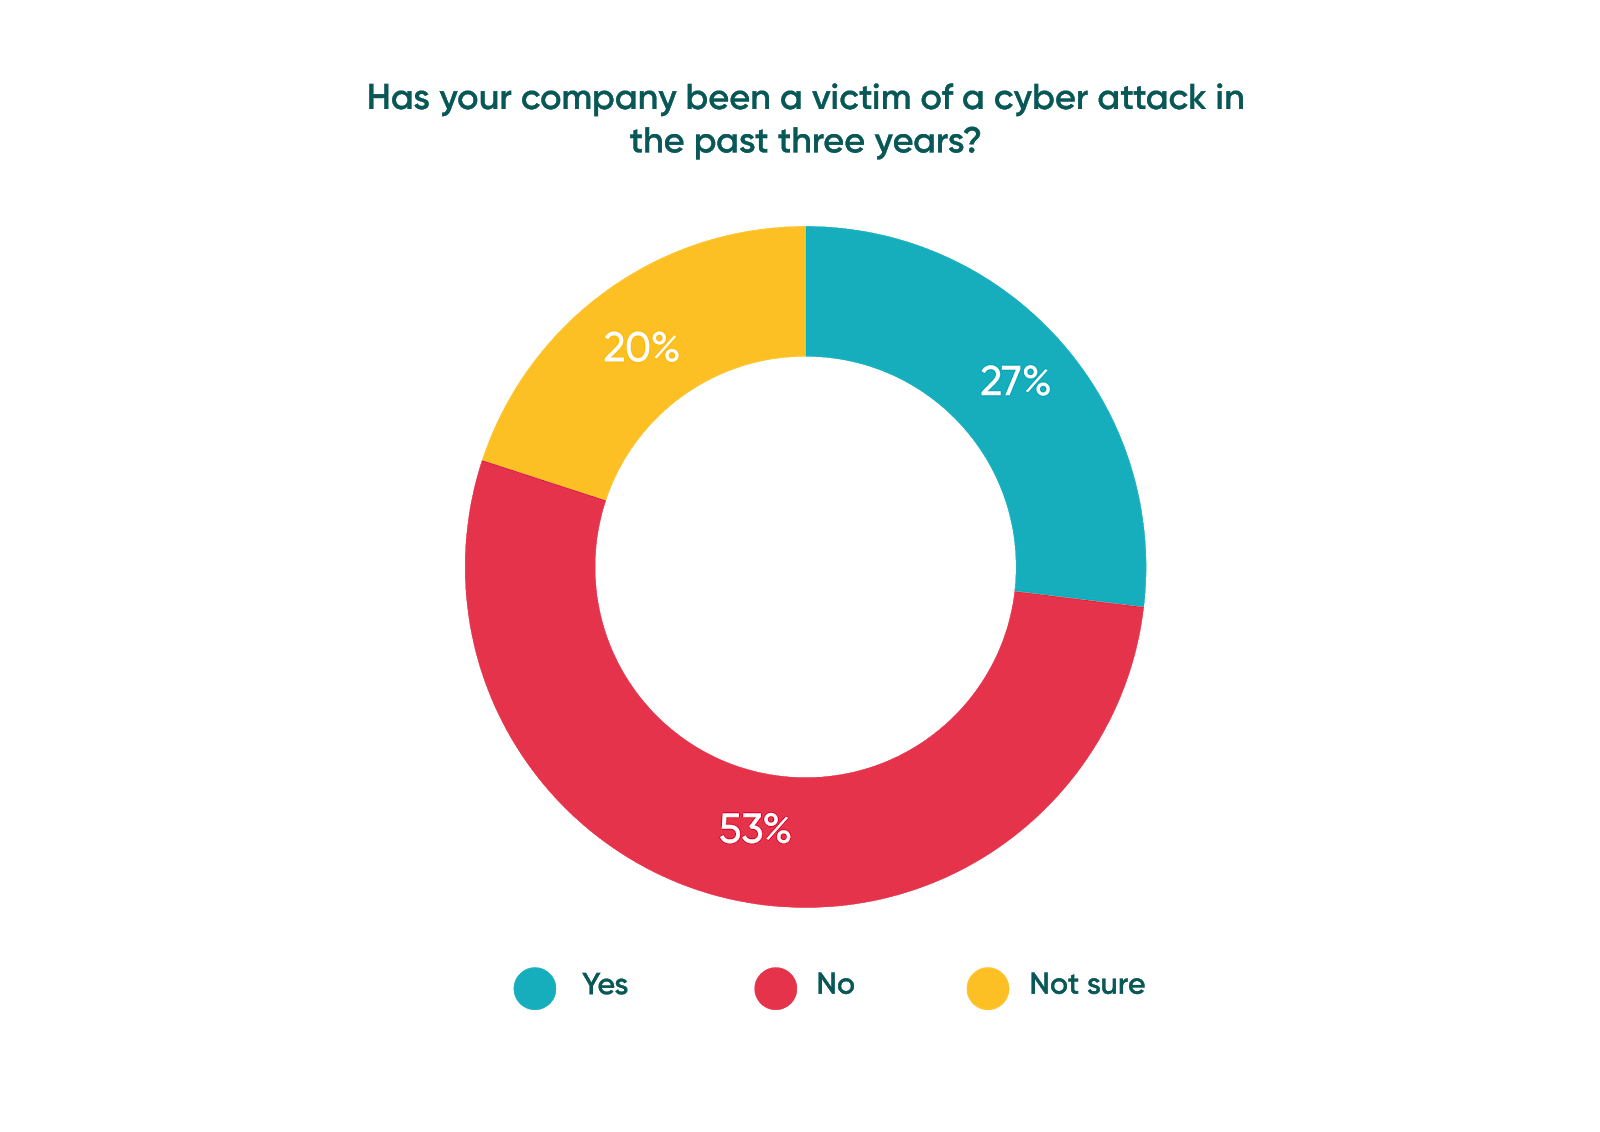 Has your company been a victim of a cyber attack in the past three years?